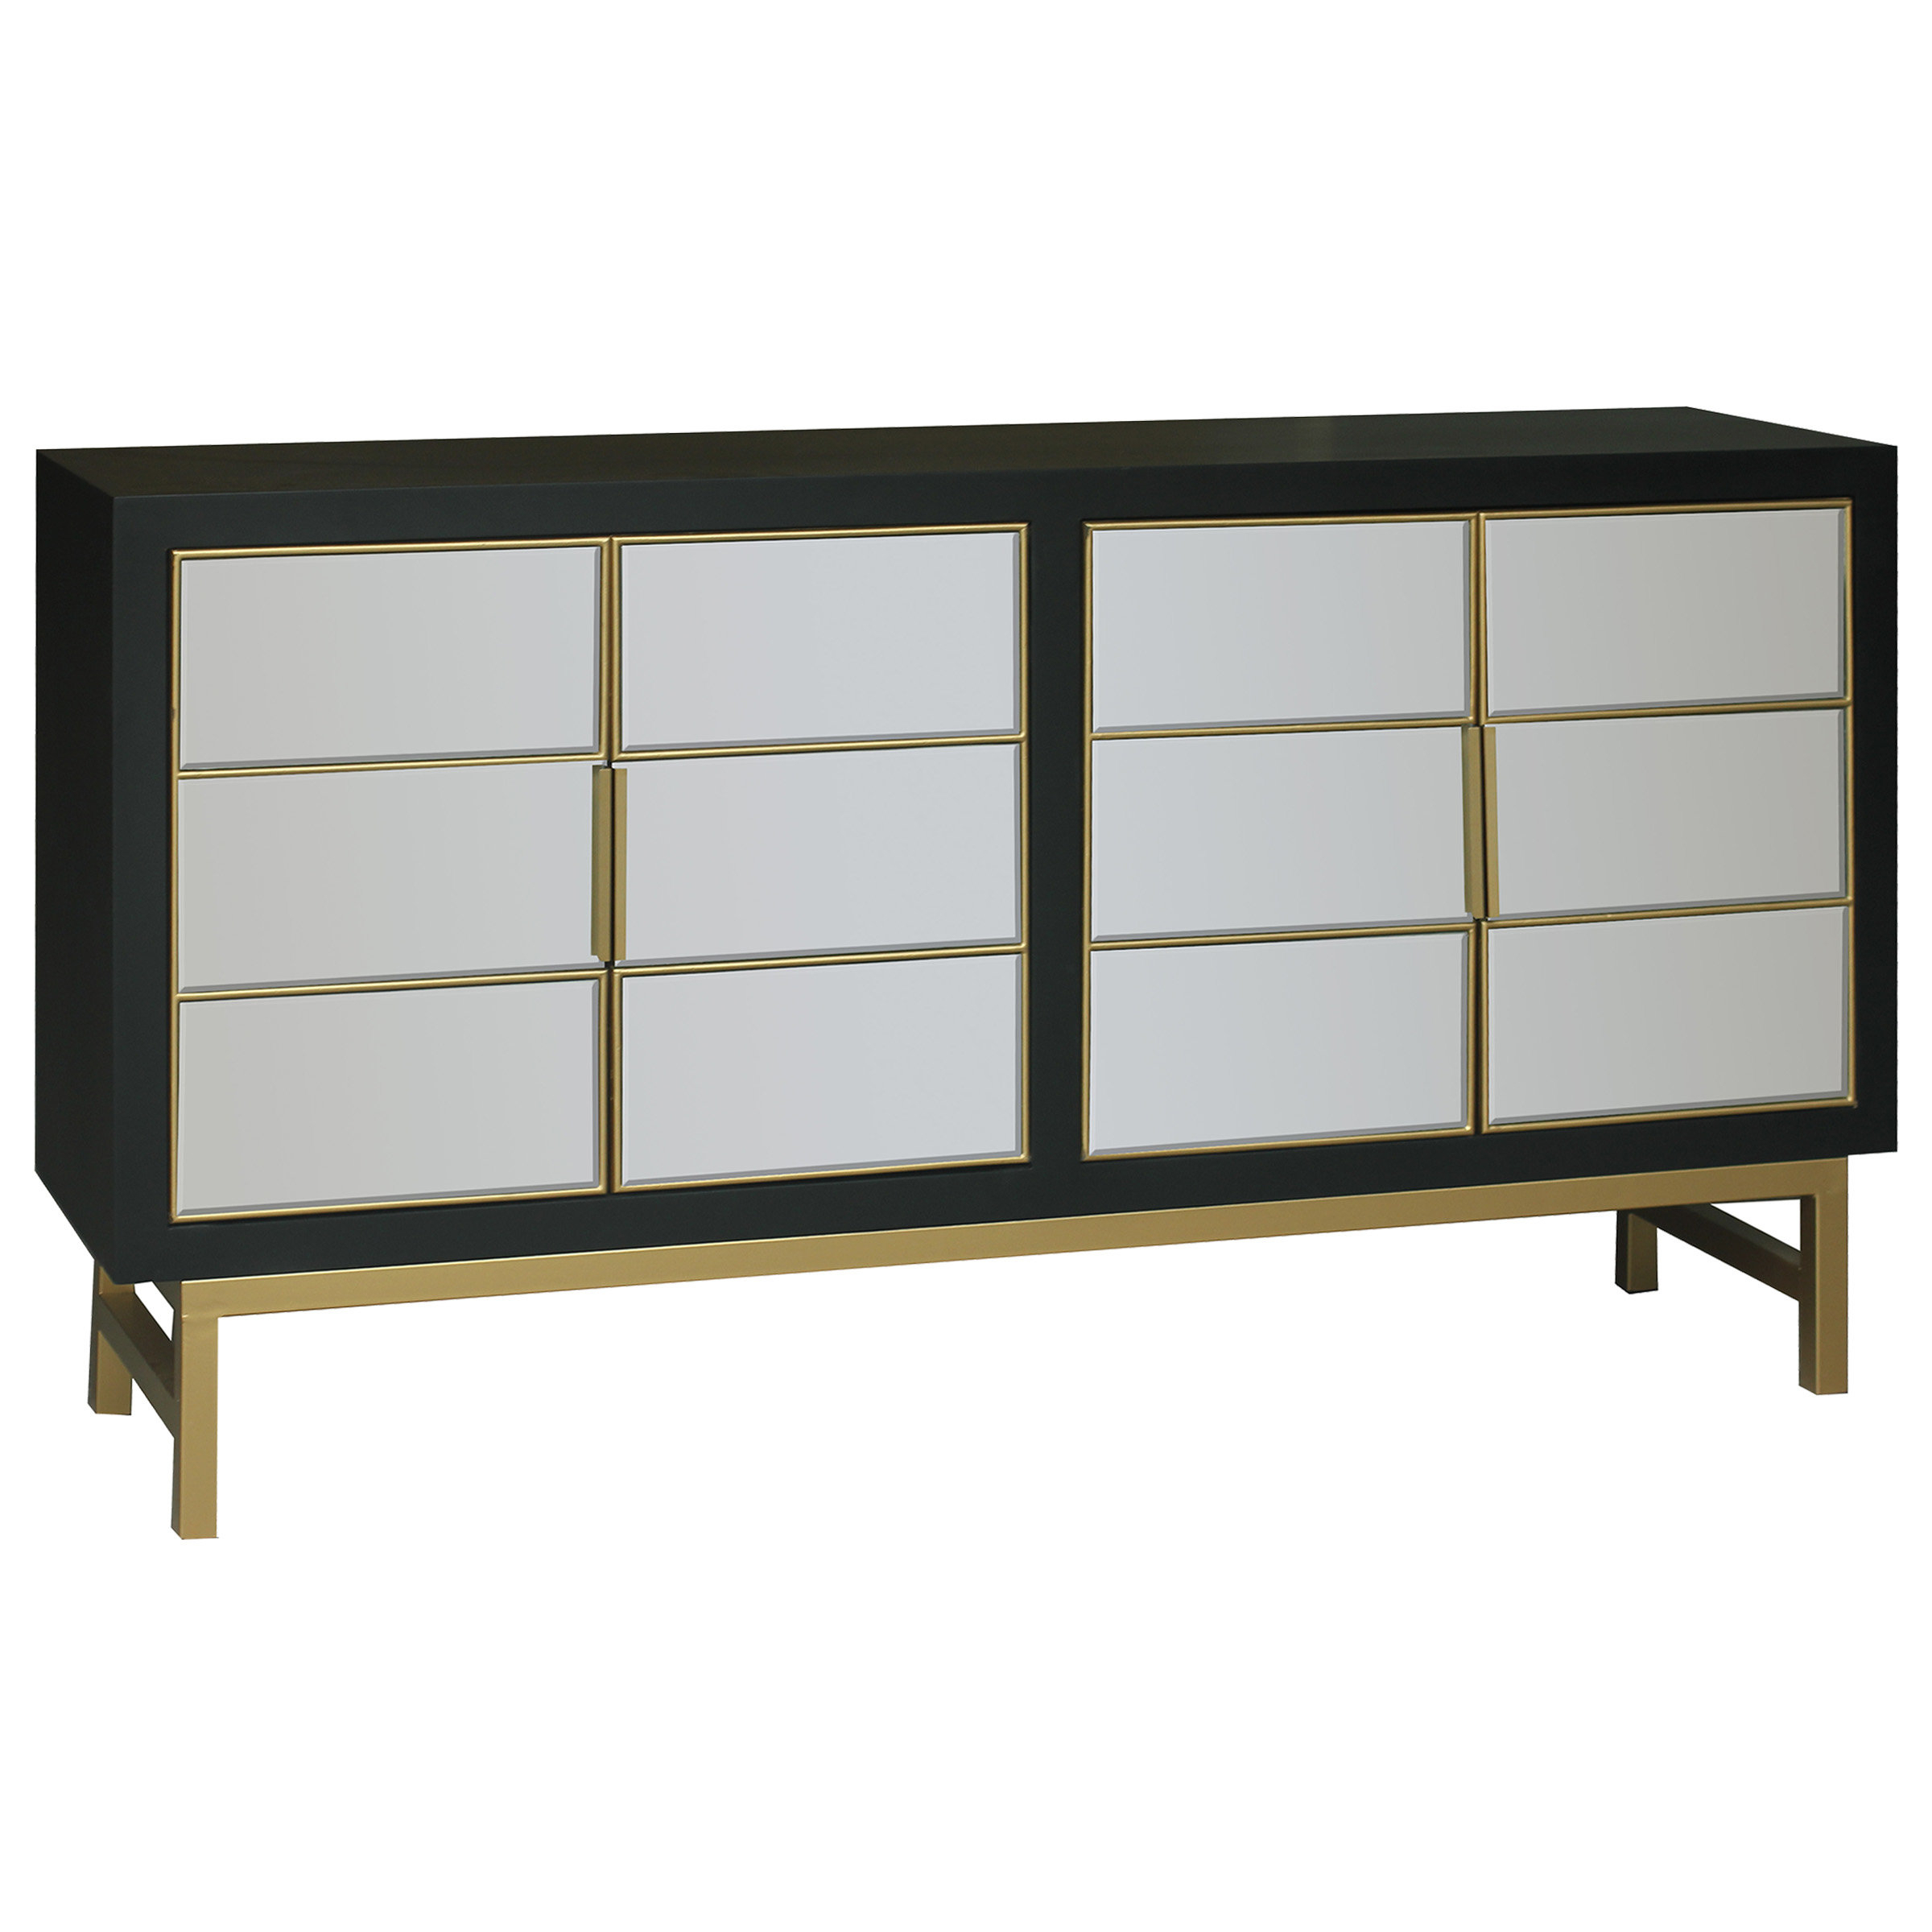 Malibu 2 Door 1 Drawer Sideboards Intended For Newest Modern & Contemporary Kieth 4 Door Credenza (View 7 of 20)